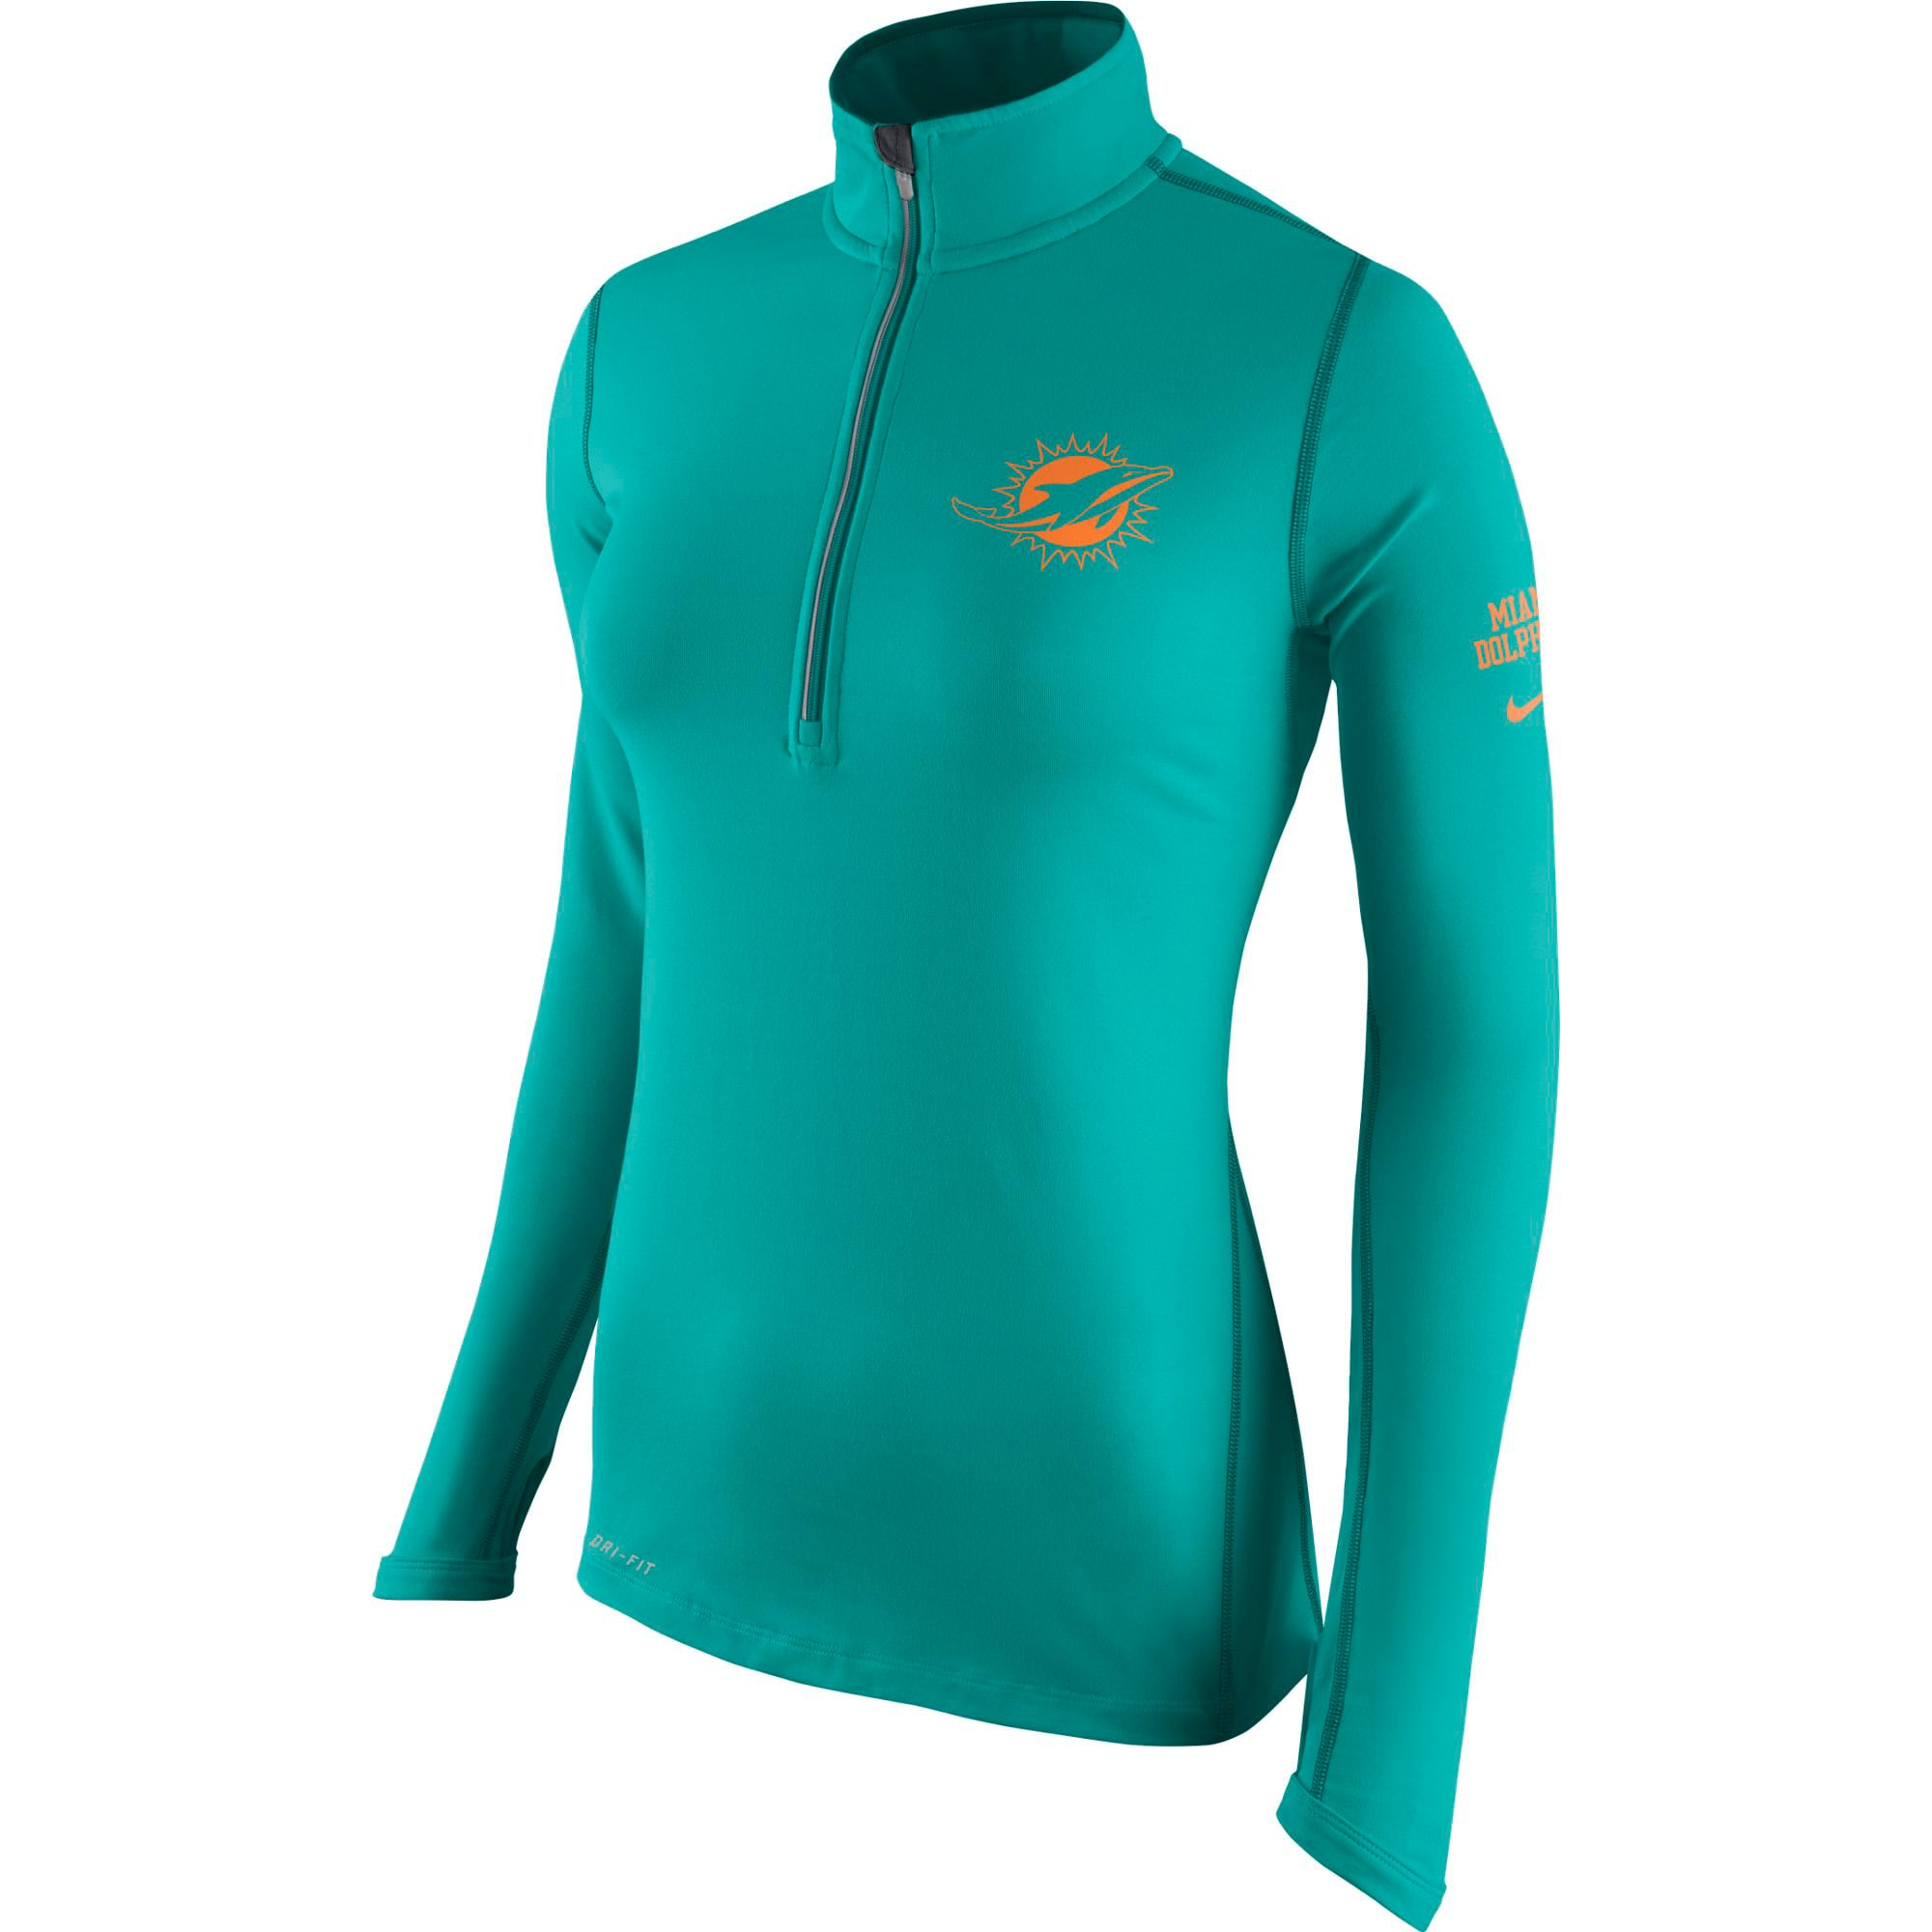 Miami Dolphins Nike Women's Tailgate Element Half-Zip Performance Jacket - Aqua